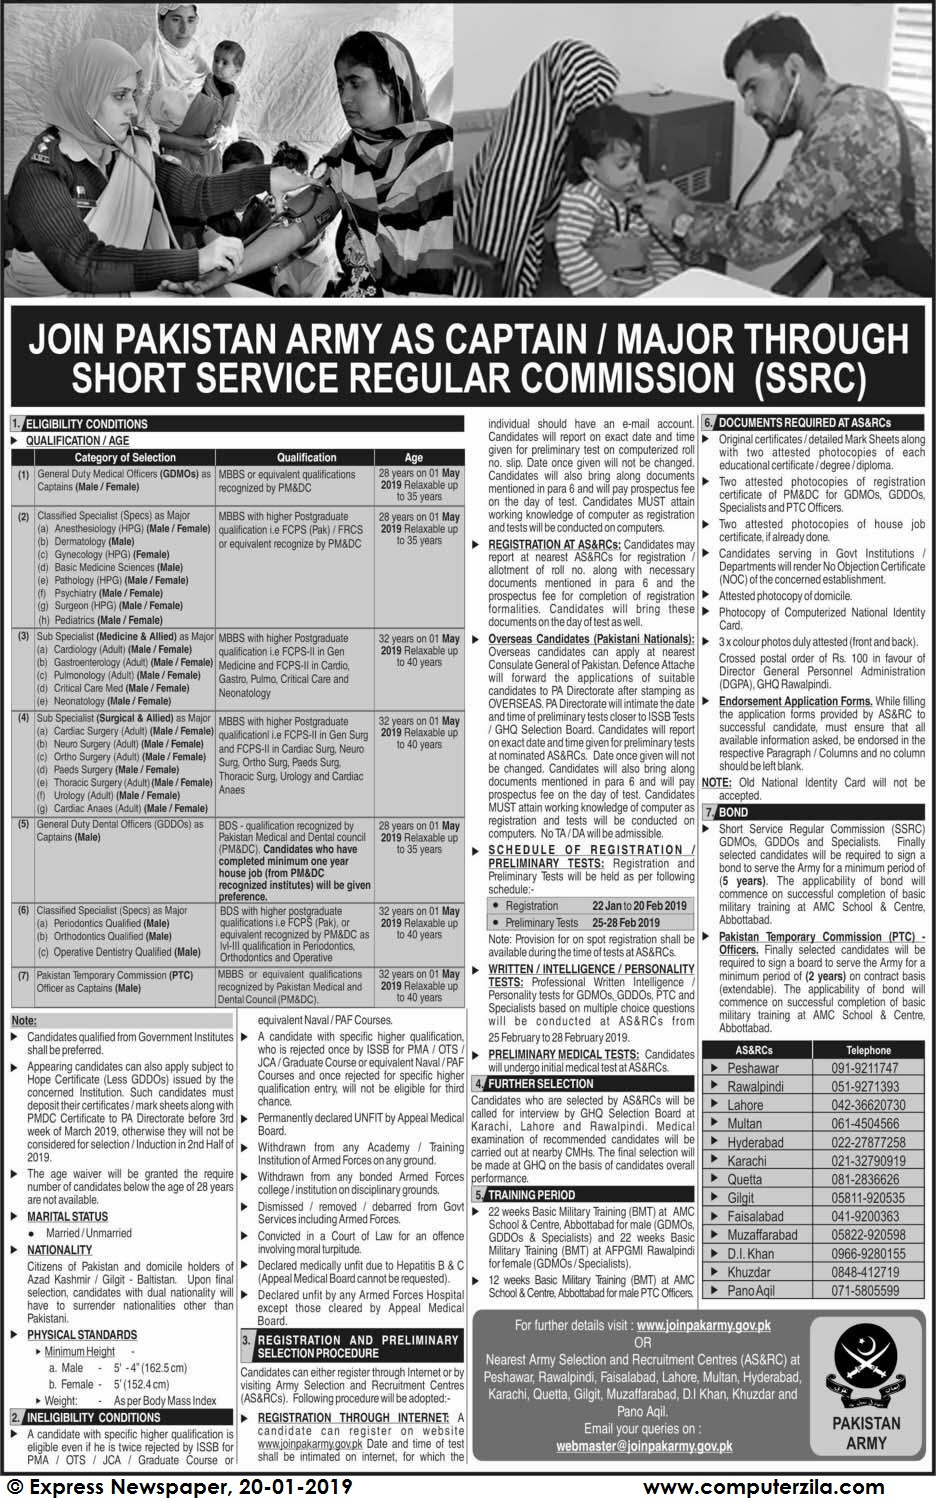 Join Pakistan Army as Captain/Major through Short Service Regular Commission (SSRC) at Pakistan Army